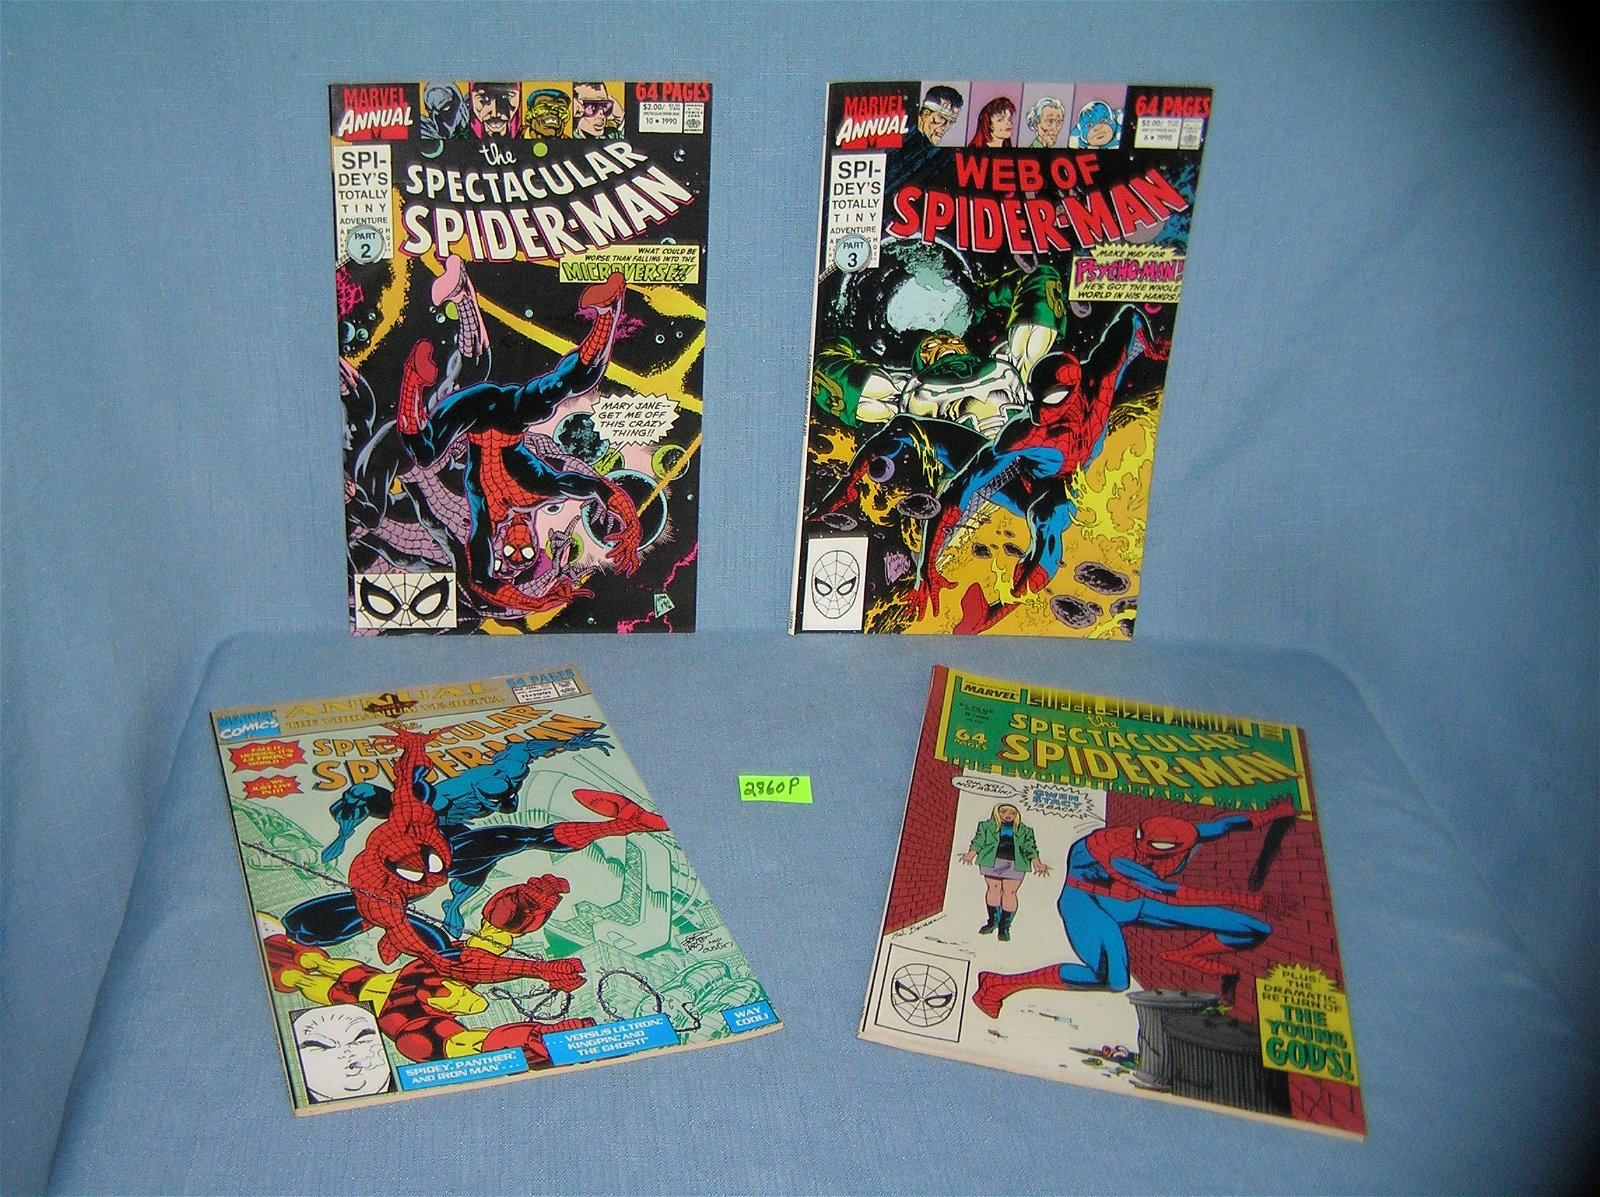 Vintage Spiderman special edition comic books